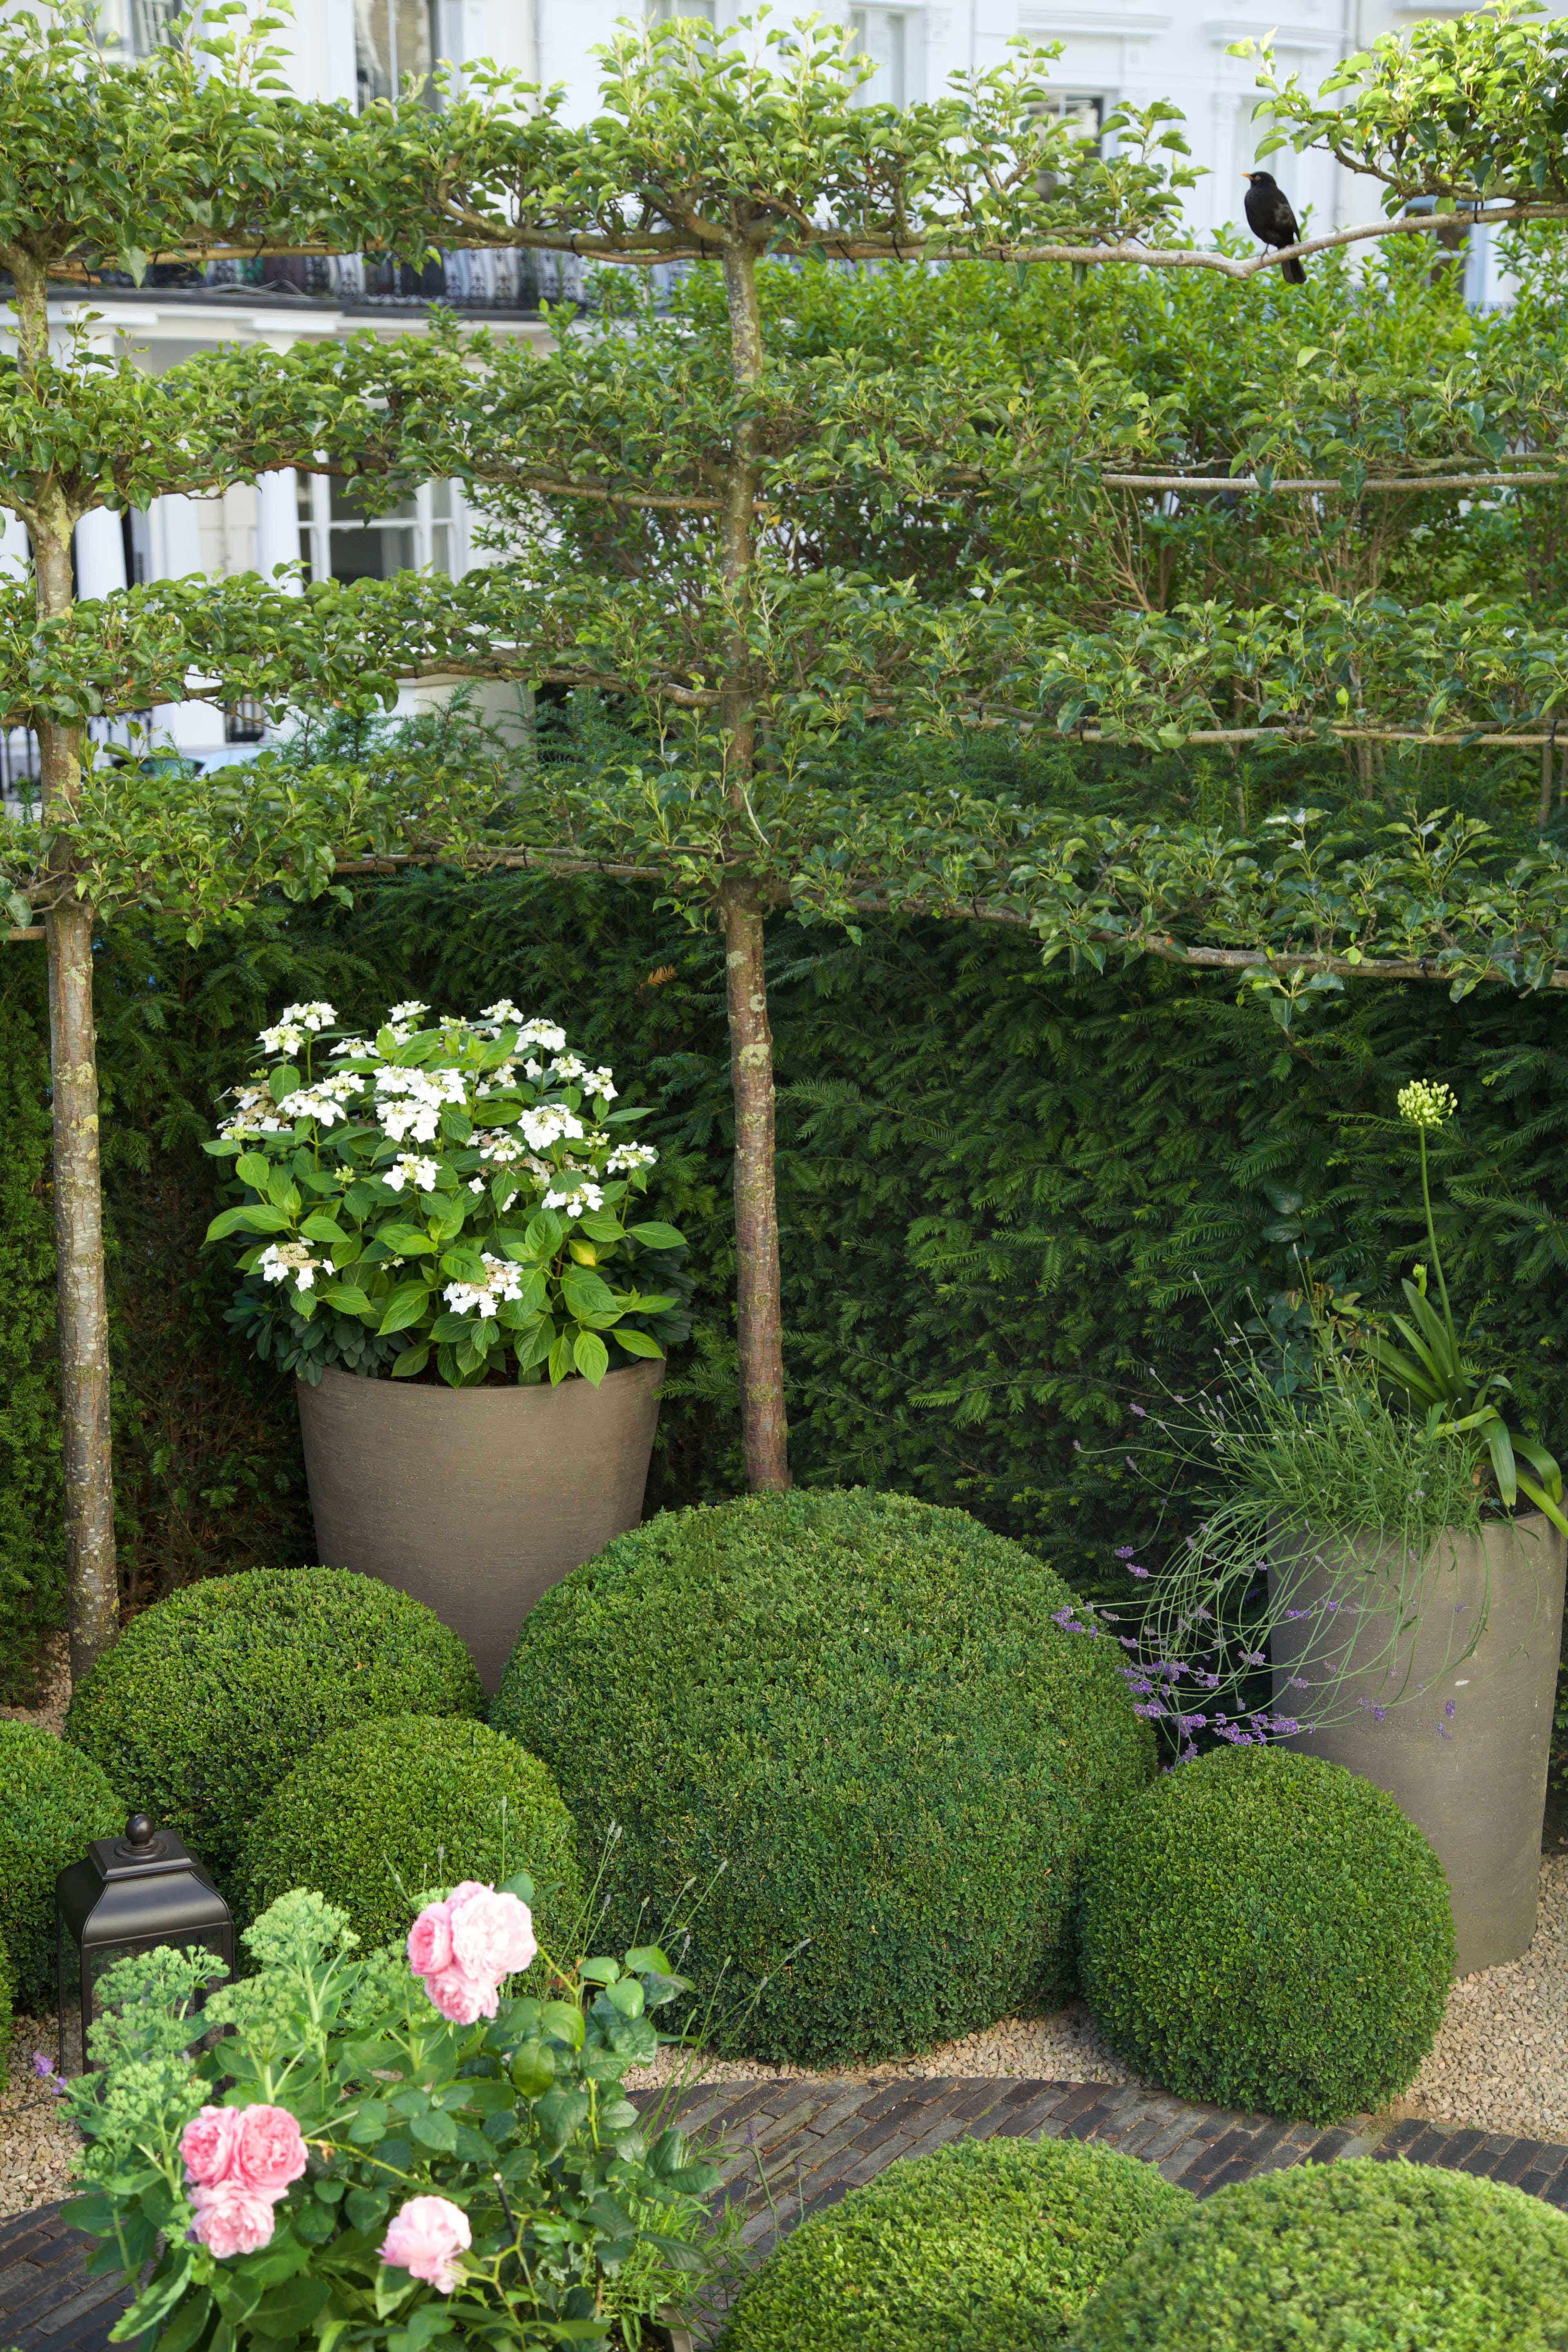 Espaliered Pear Trees Box Balls And Atelier Vierkant Pots Flemish Brick Paths And Charles Edwards Lanterns Sloped Garden Landscaping On A Hill Garden Design